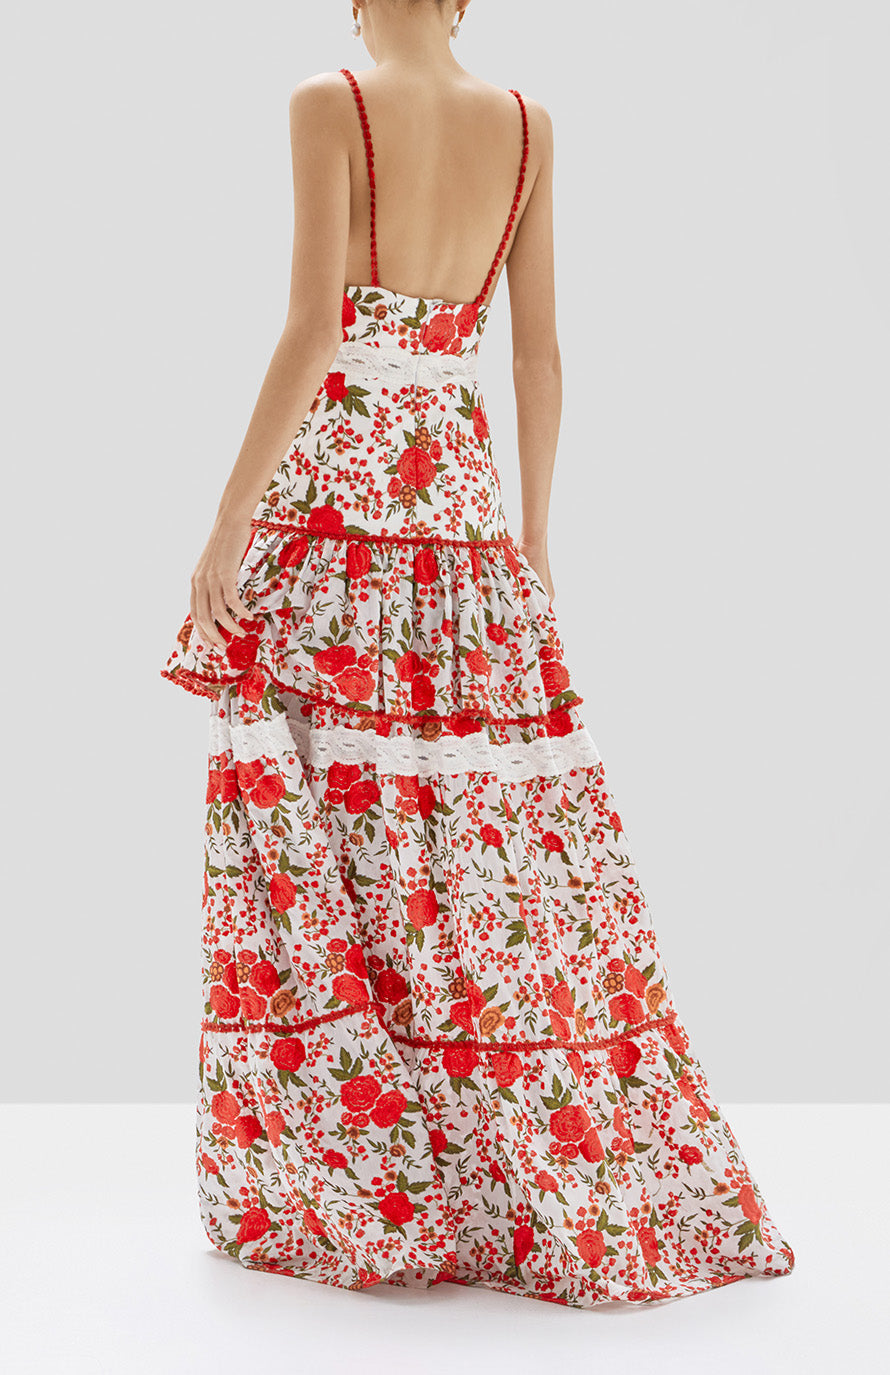 Alexis Naomie Dress in Rose Embroidery from Pre Spring 2020 Collection - Rear View